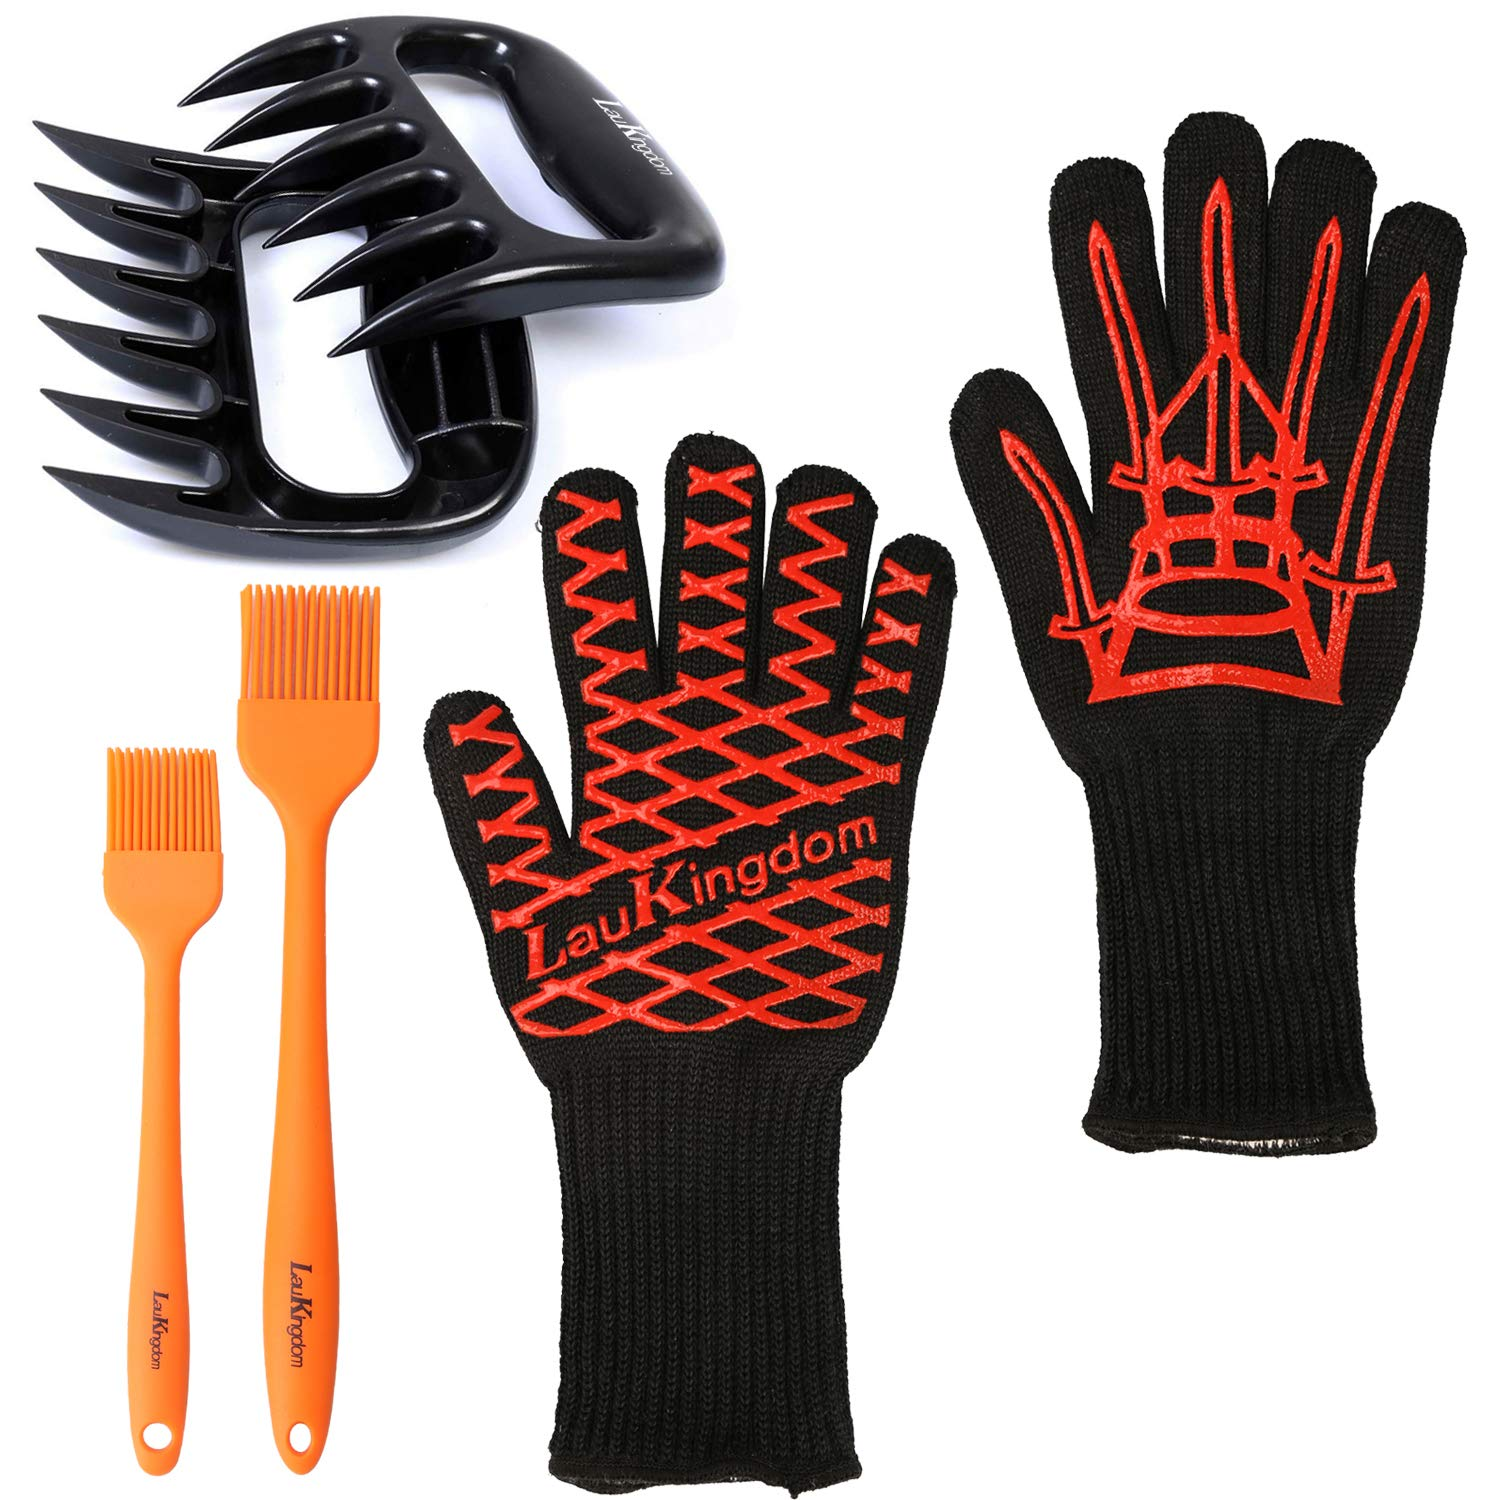 LauKingdom BBQ Grill Tools, Grilling Accessories with Heat Resistant Gloves, Meat Claws & Brushes by LauKingdom